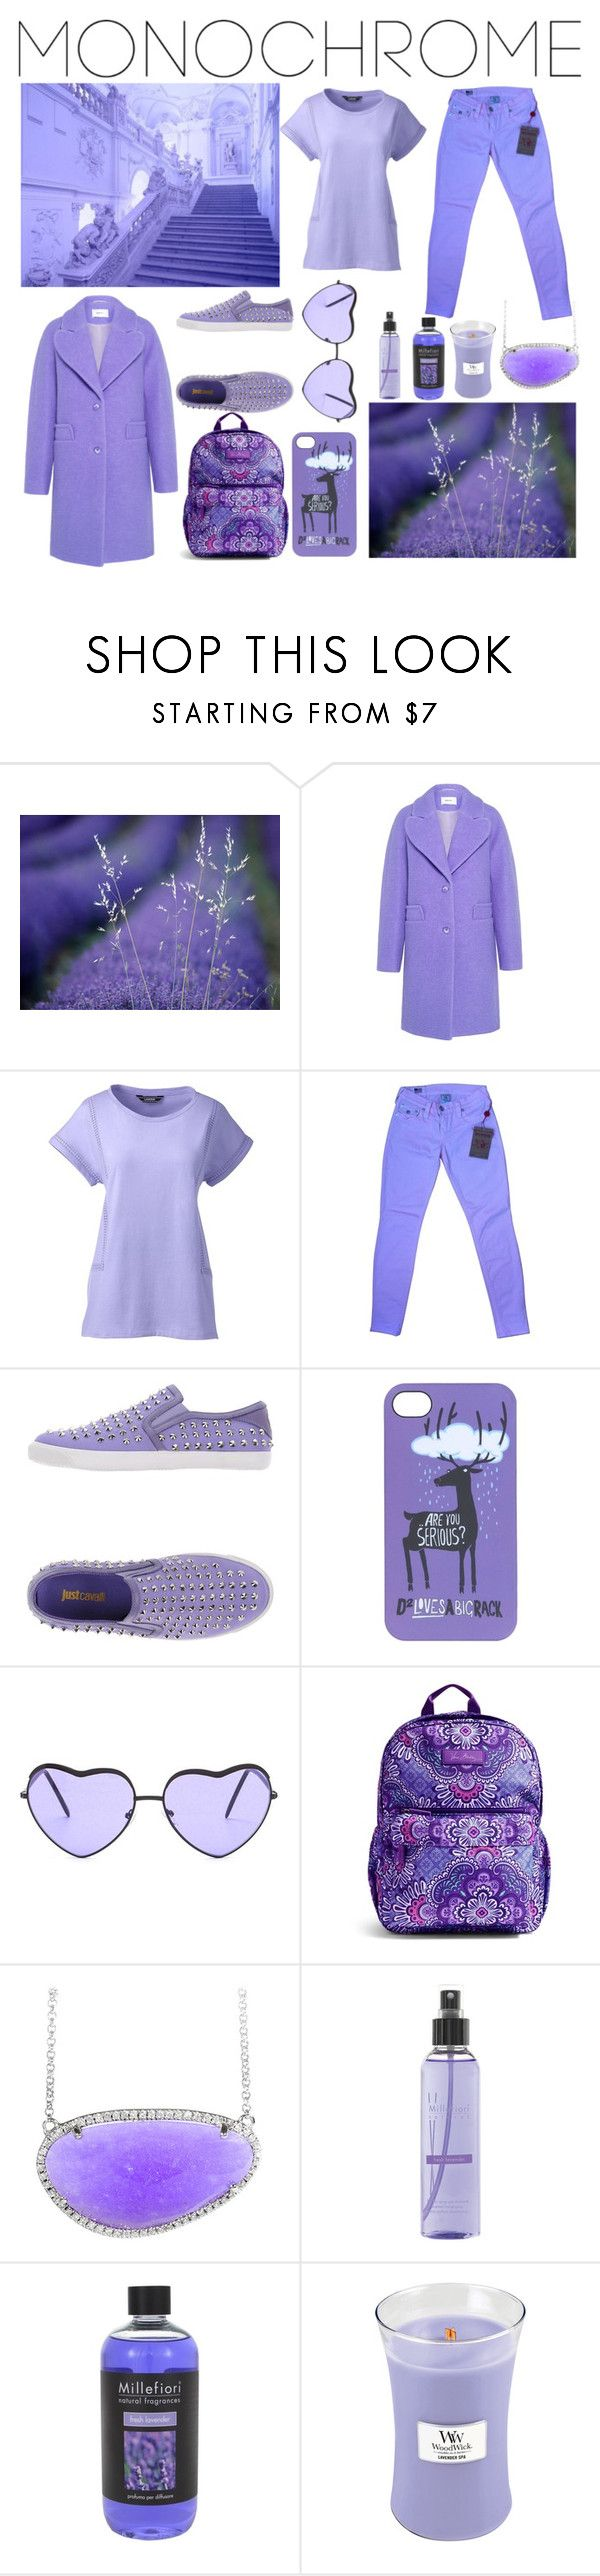 """""""Monochrome. Lavender."""" by lynnbain ❤ liked on Polyvore featuring Carven, Lands' End, True Religion, Just Cavalli, Dsquared2, Vera Bradley, Millefiori, WoodWick, monochrome and purple"""